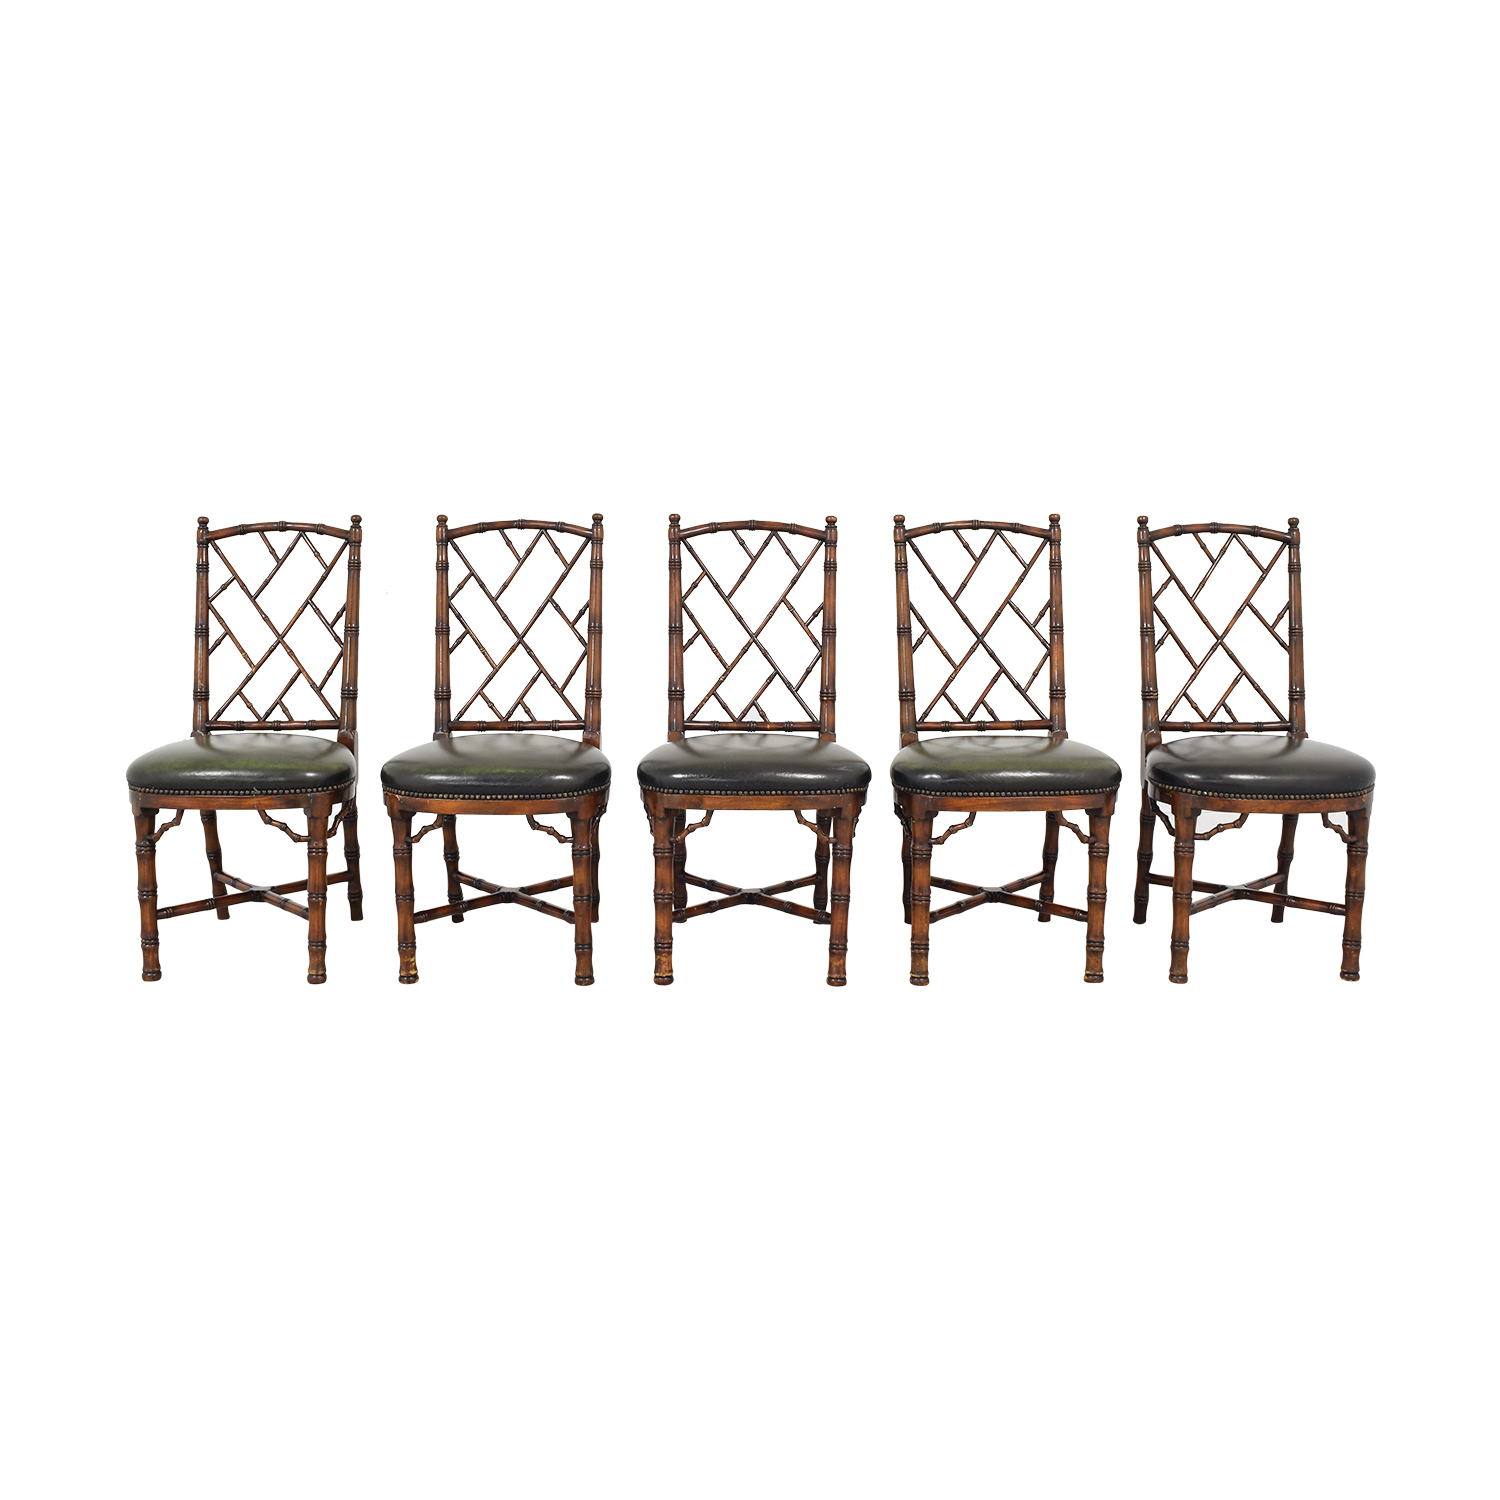 Terrific 67 Off Theodore Alexander Theodore Alexander Trellis Side Chairs Chairs Short Links Chair Design For Home Short Linksinfo